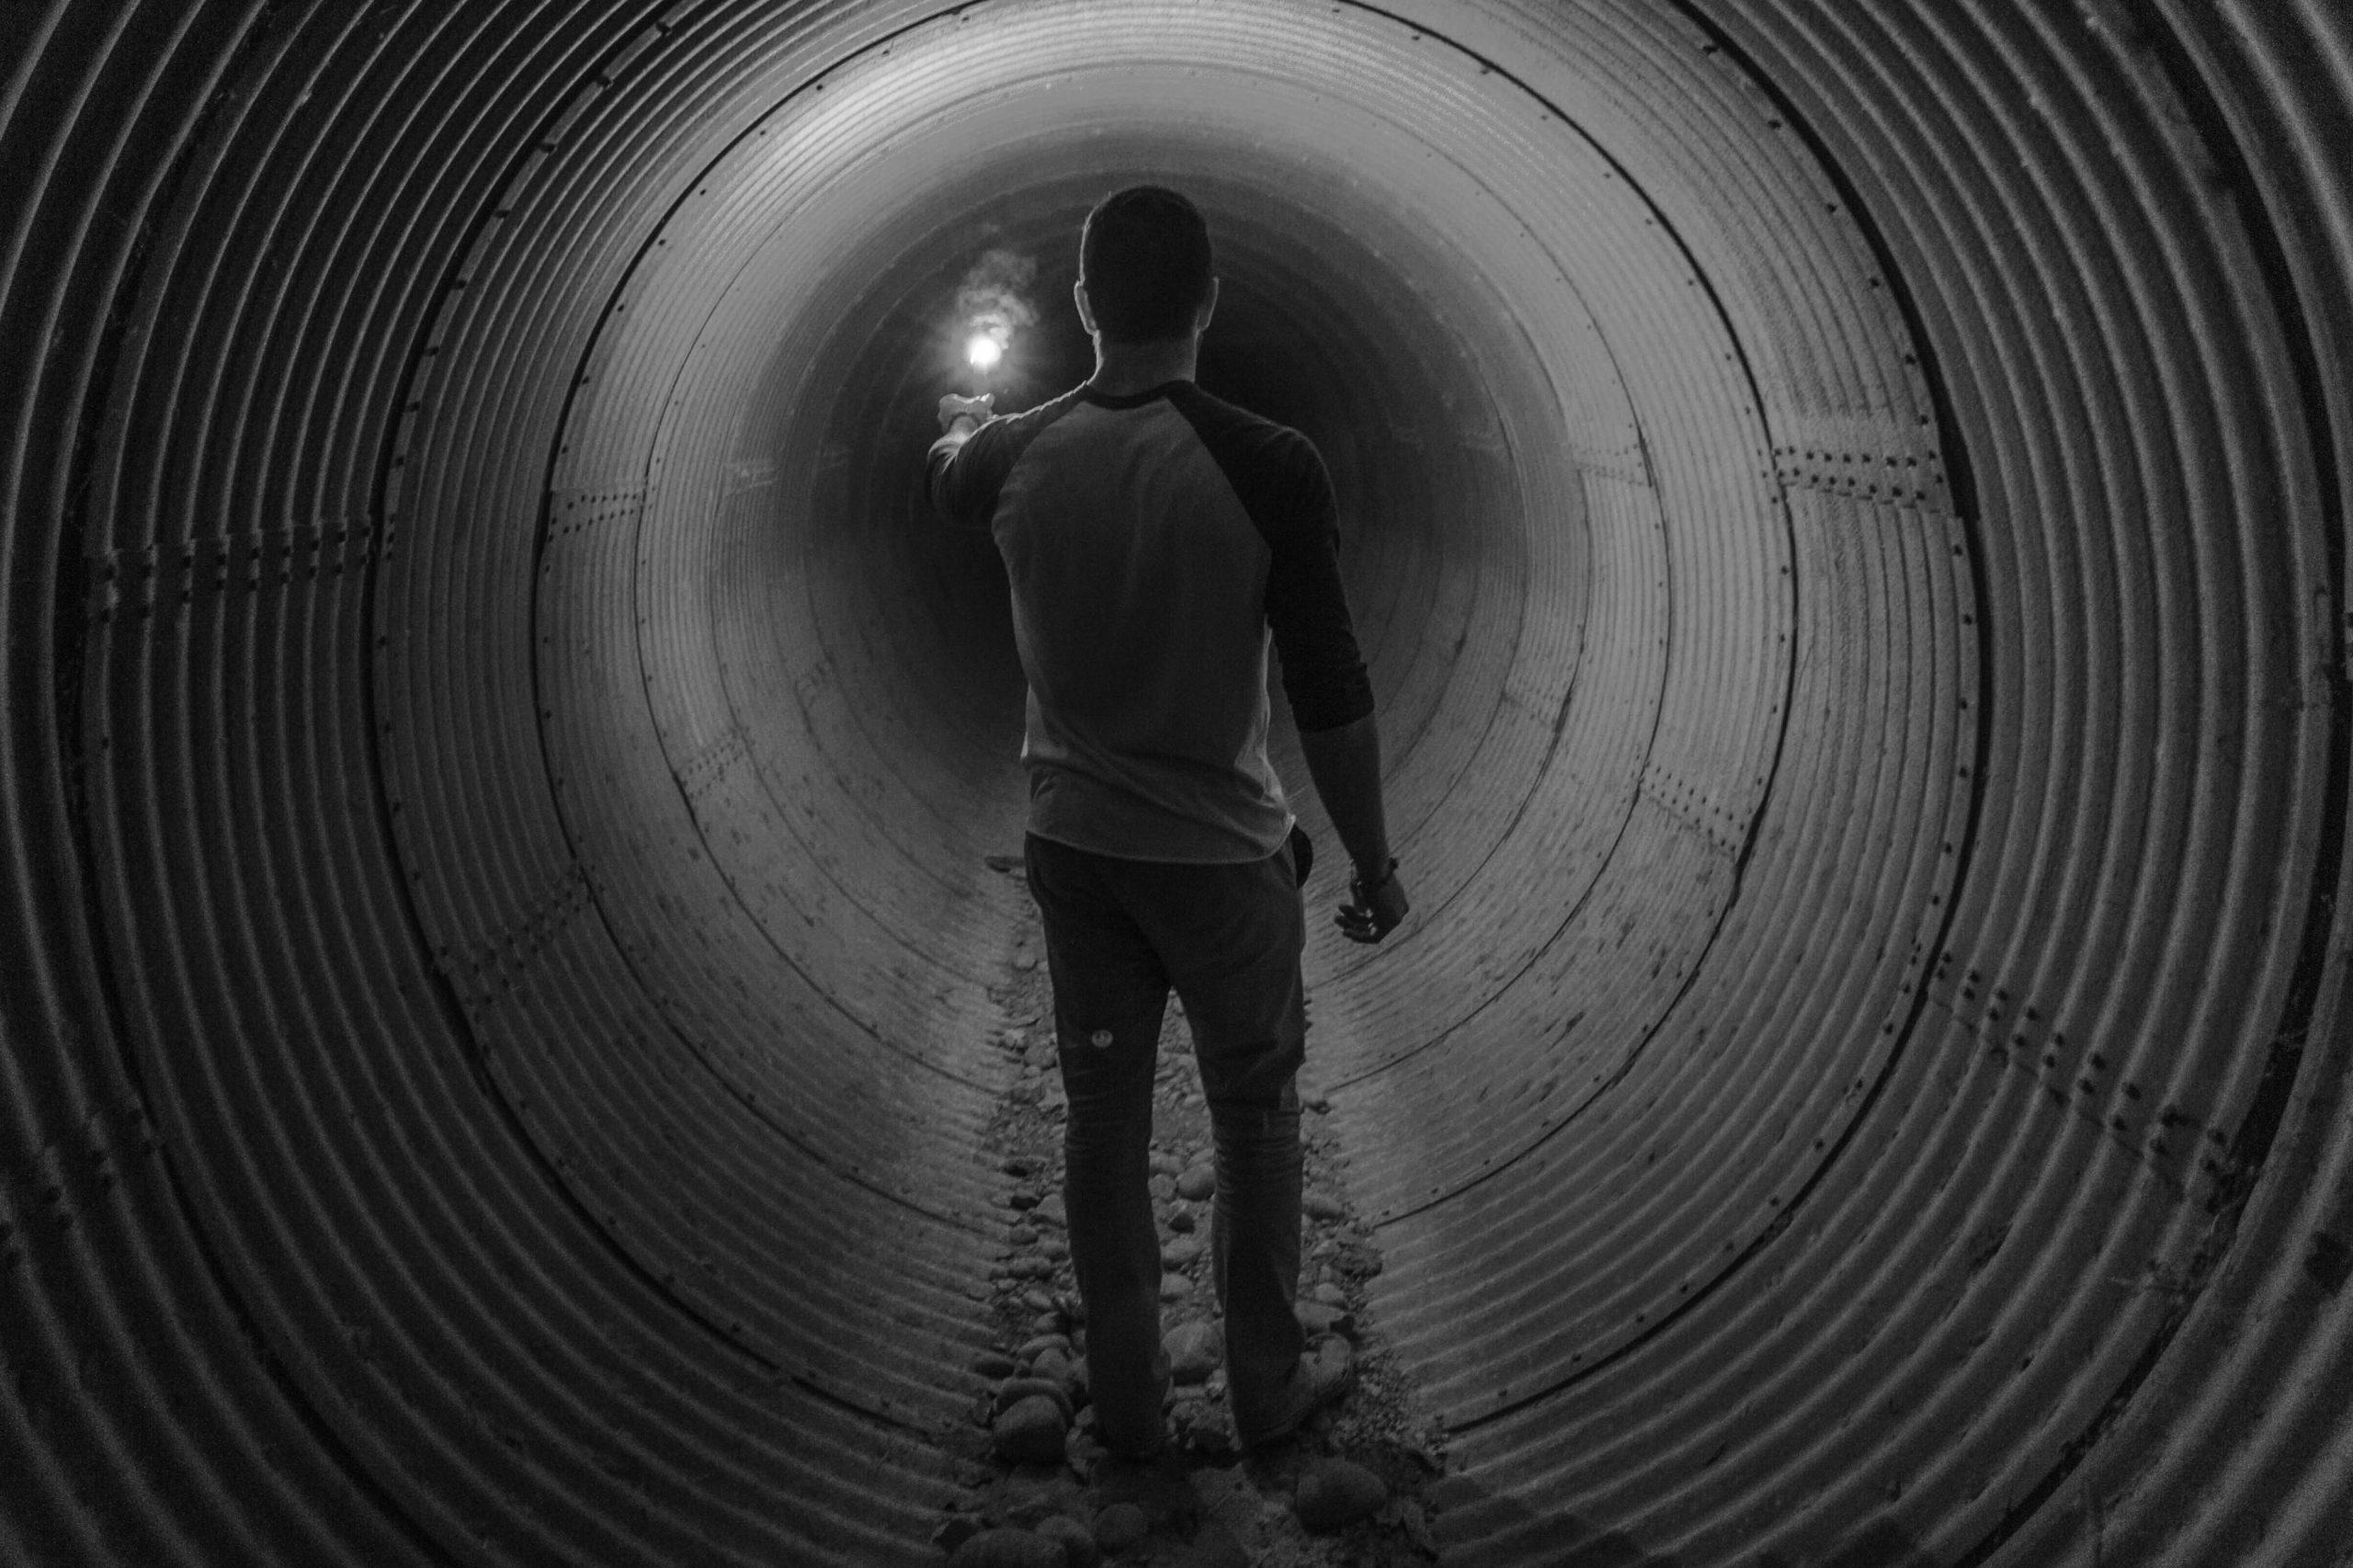 black and white photo pf man walking in huge pipe, holding a light